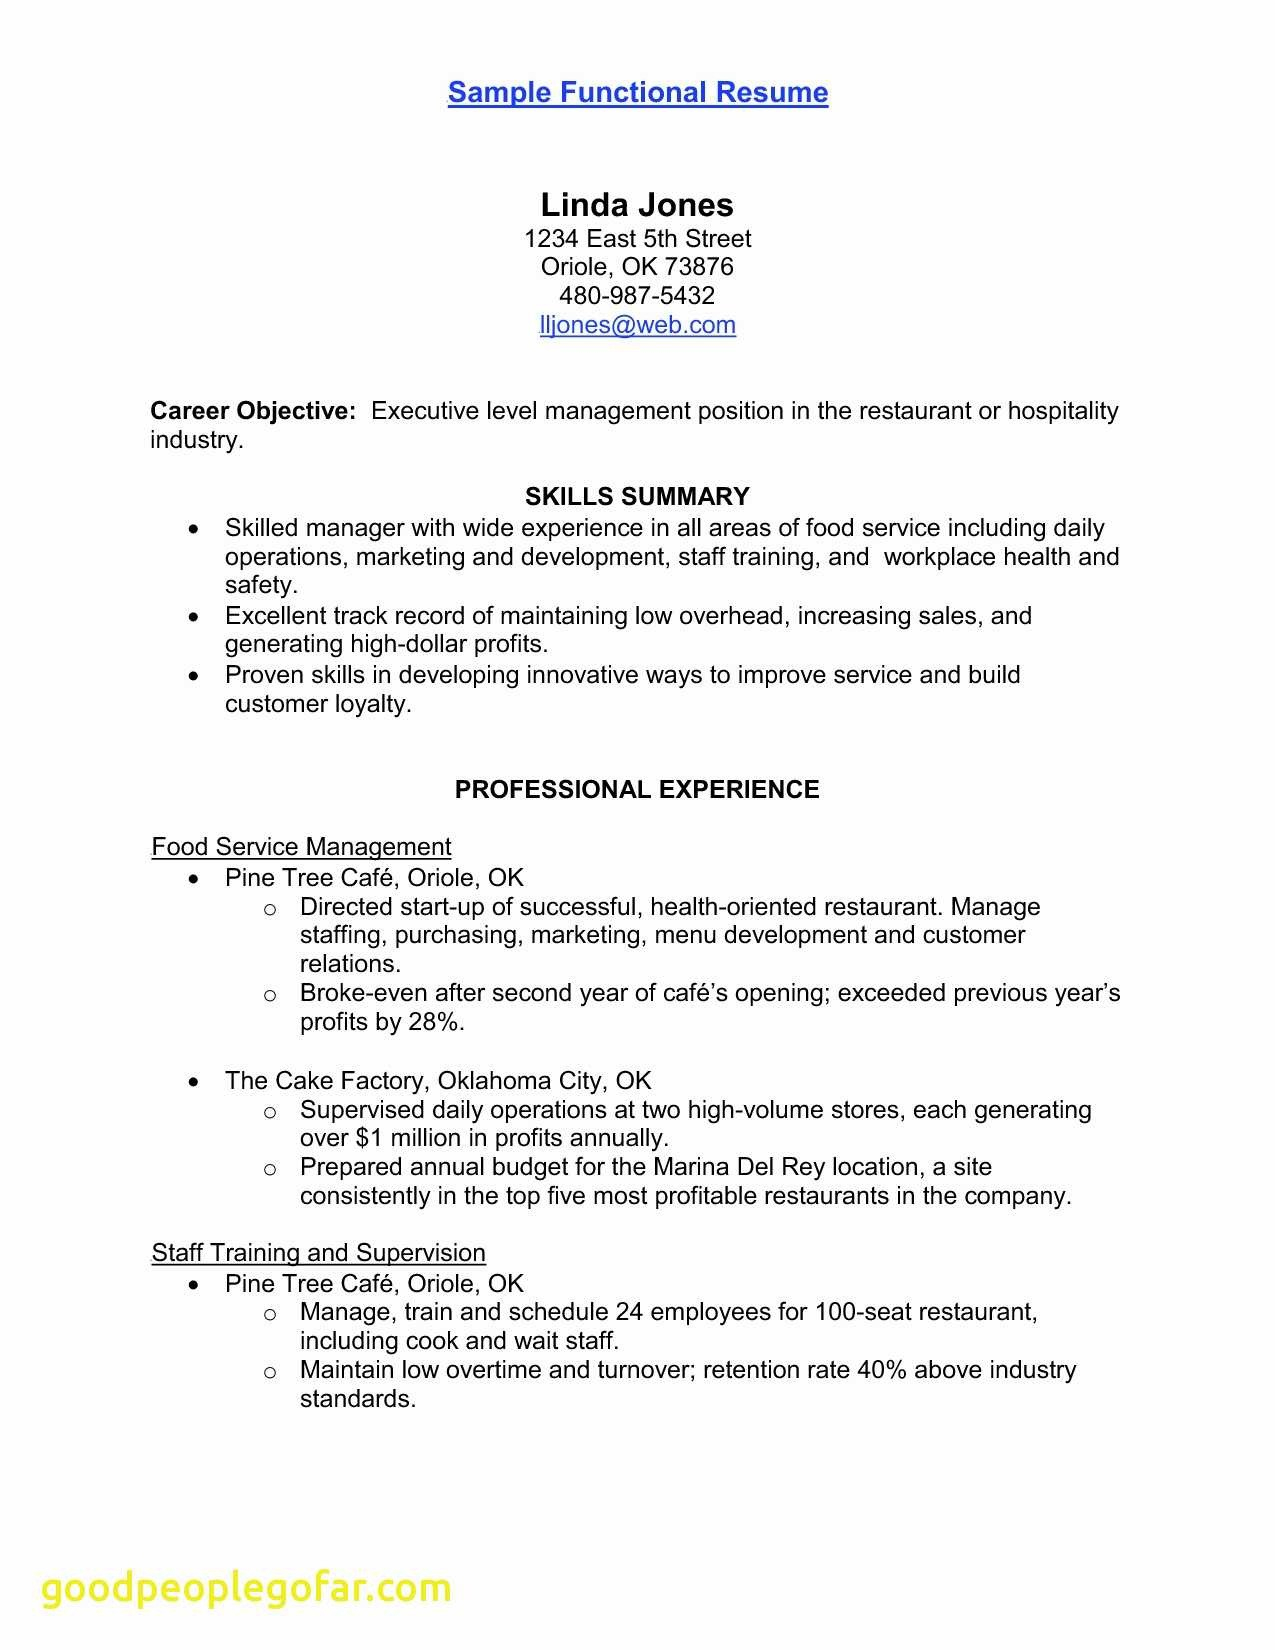 Service Industry Resume Examples - Ses Resume Examples format Unique Monster Resume Luxury Monster